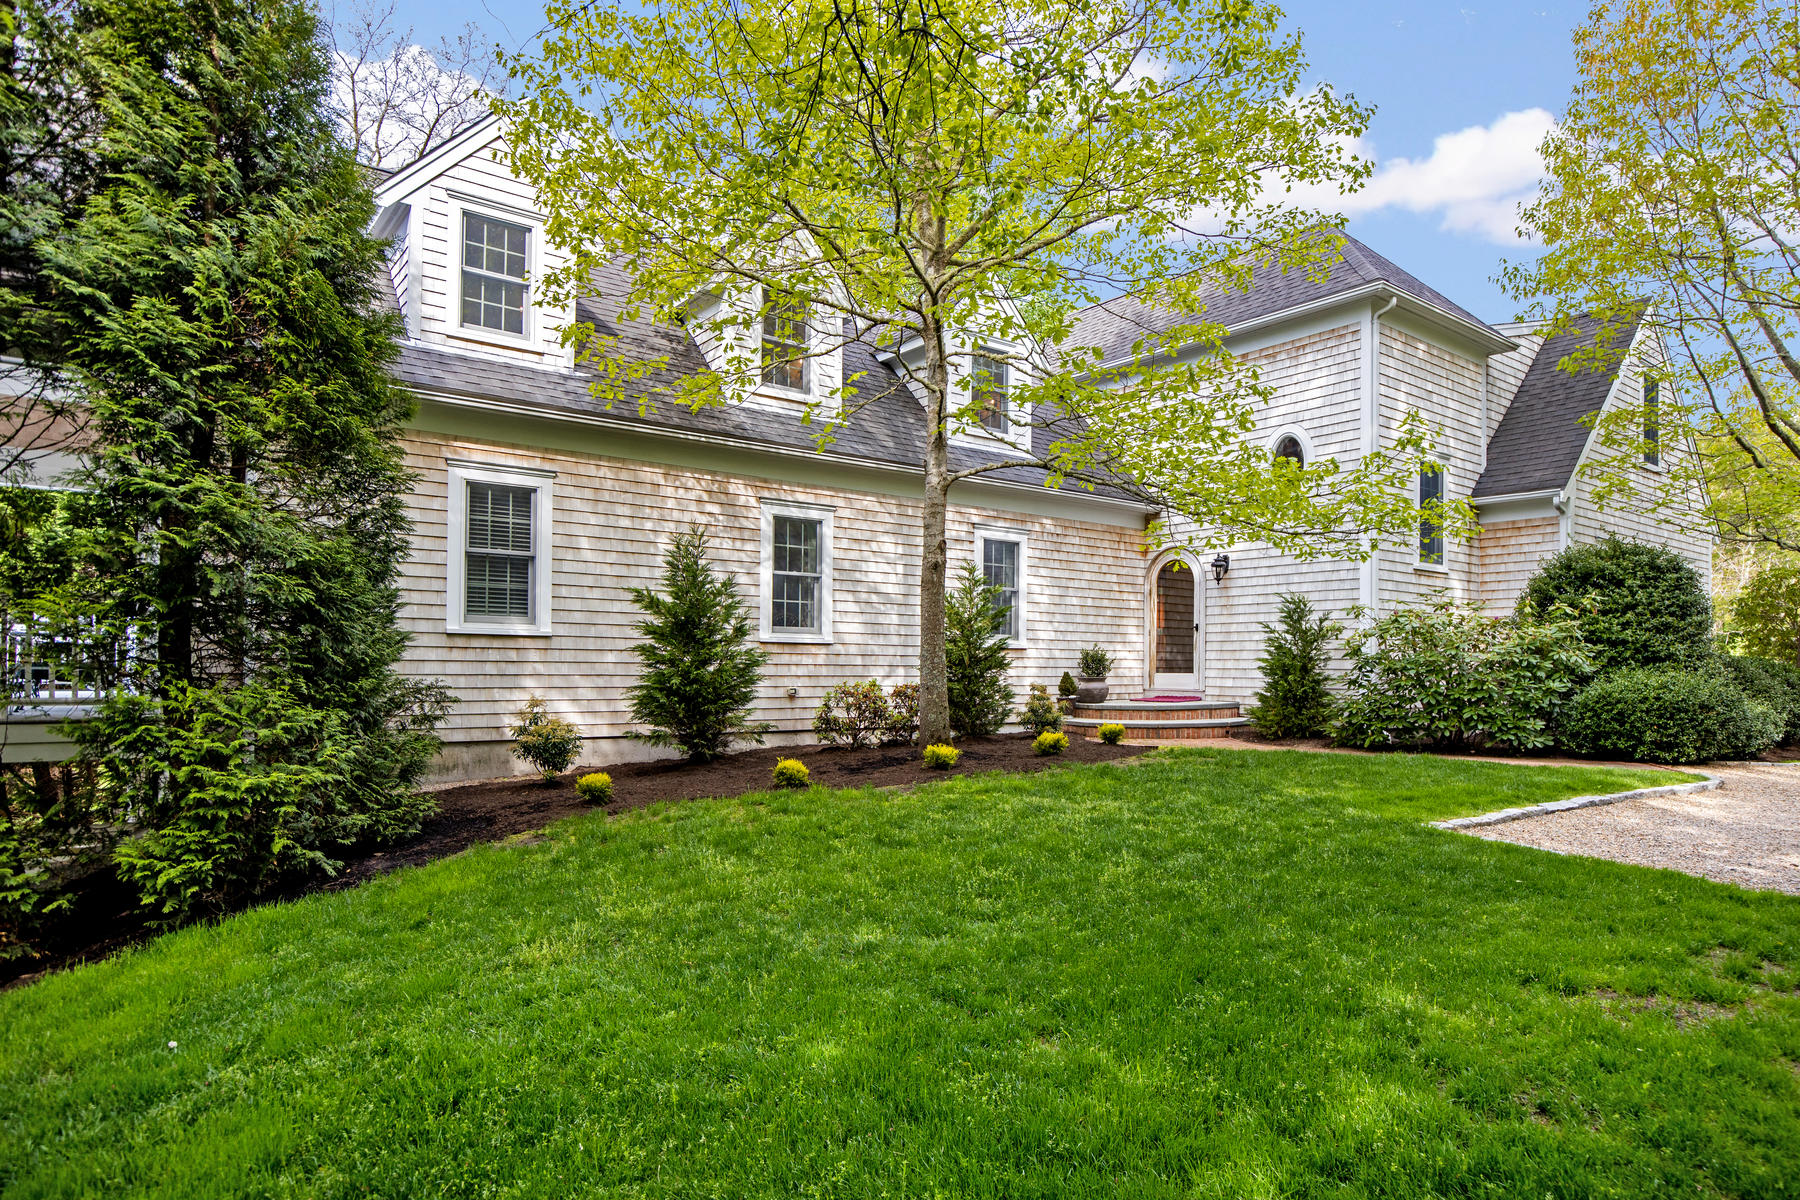 36 Cahoon Road, Brewster MA, 02631 sales details